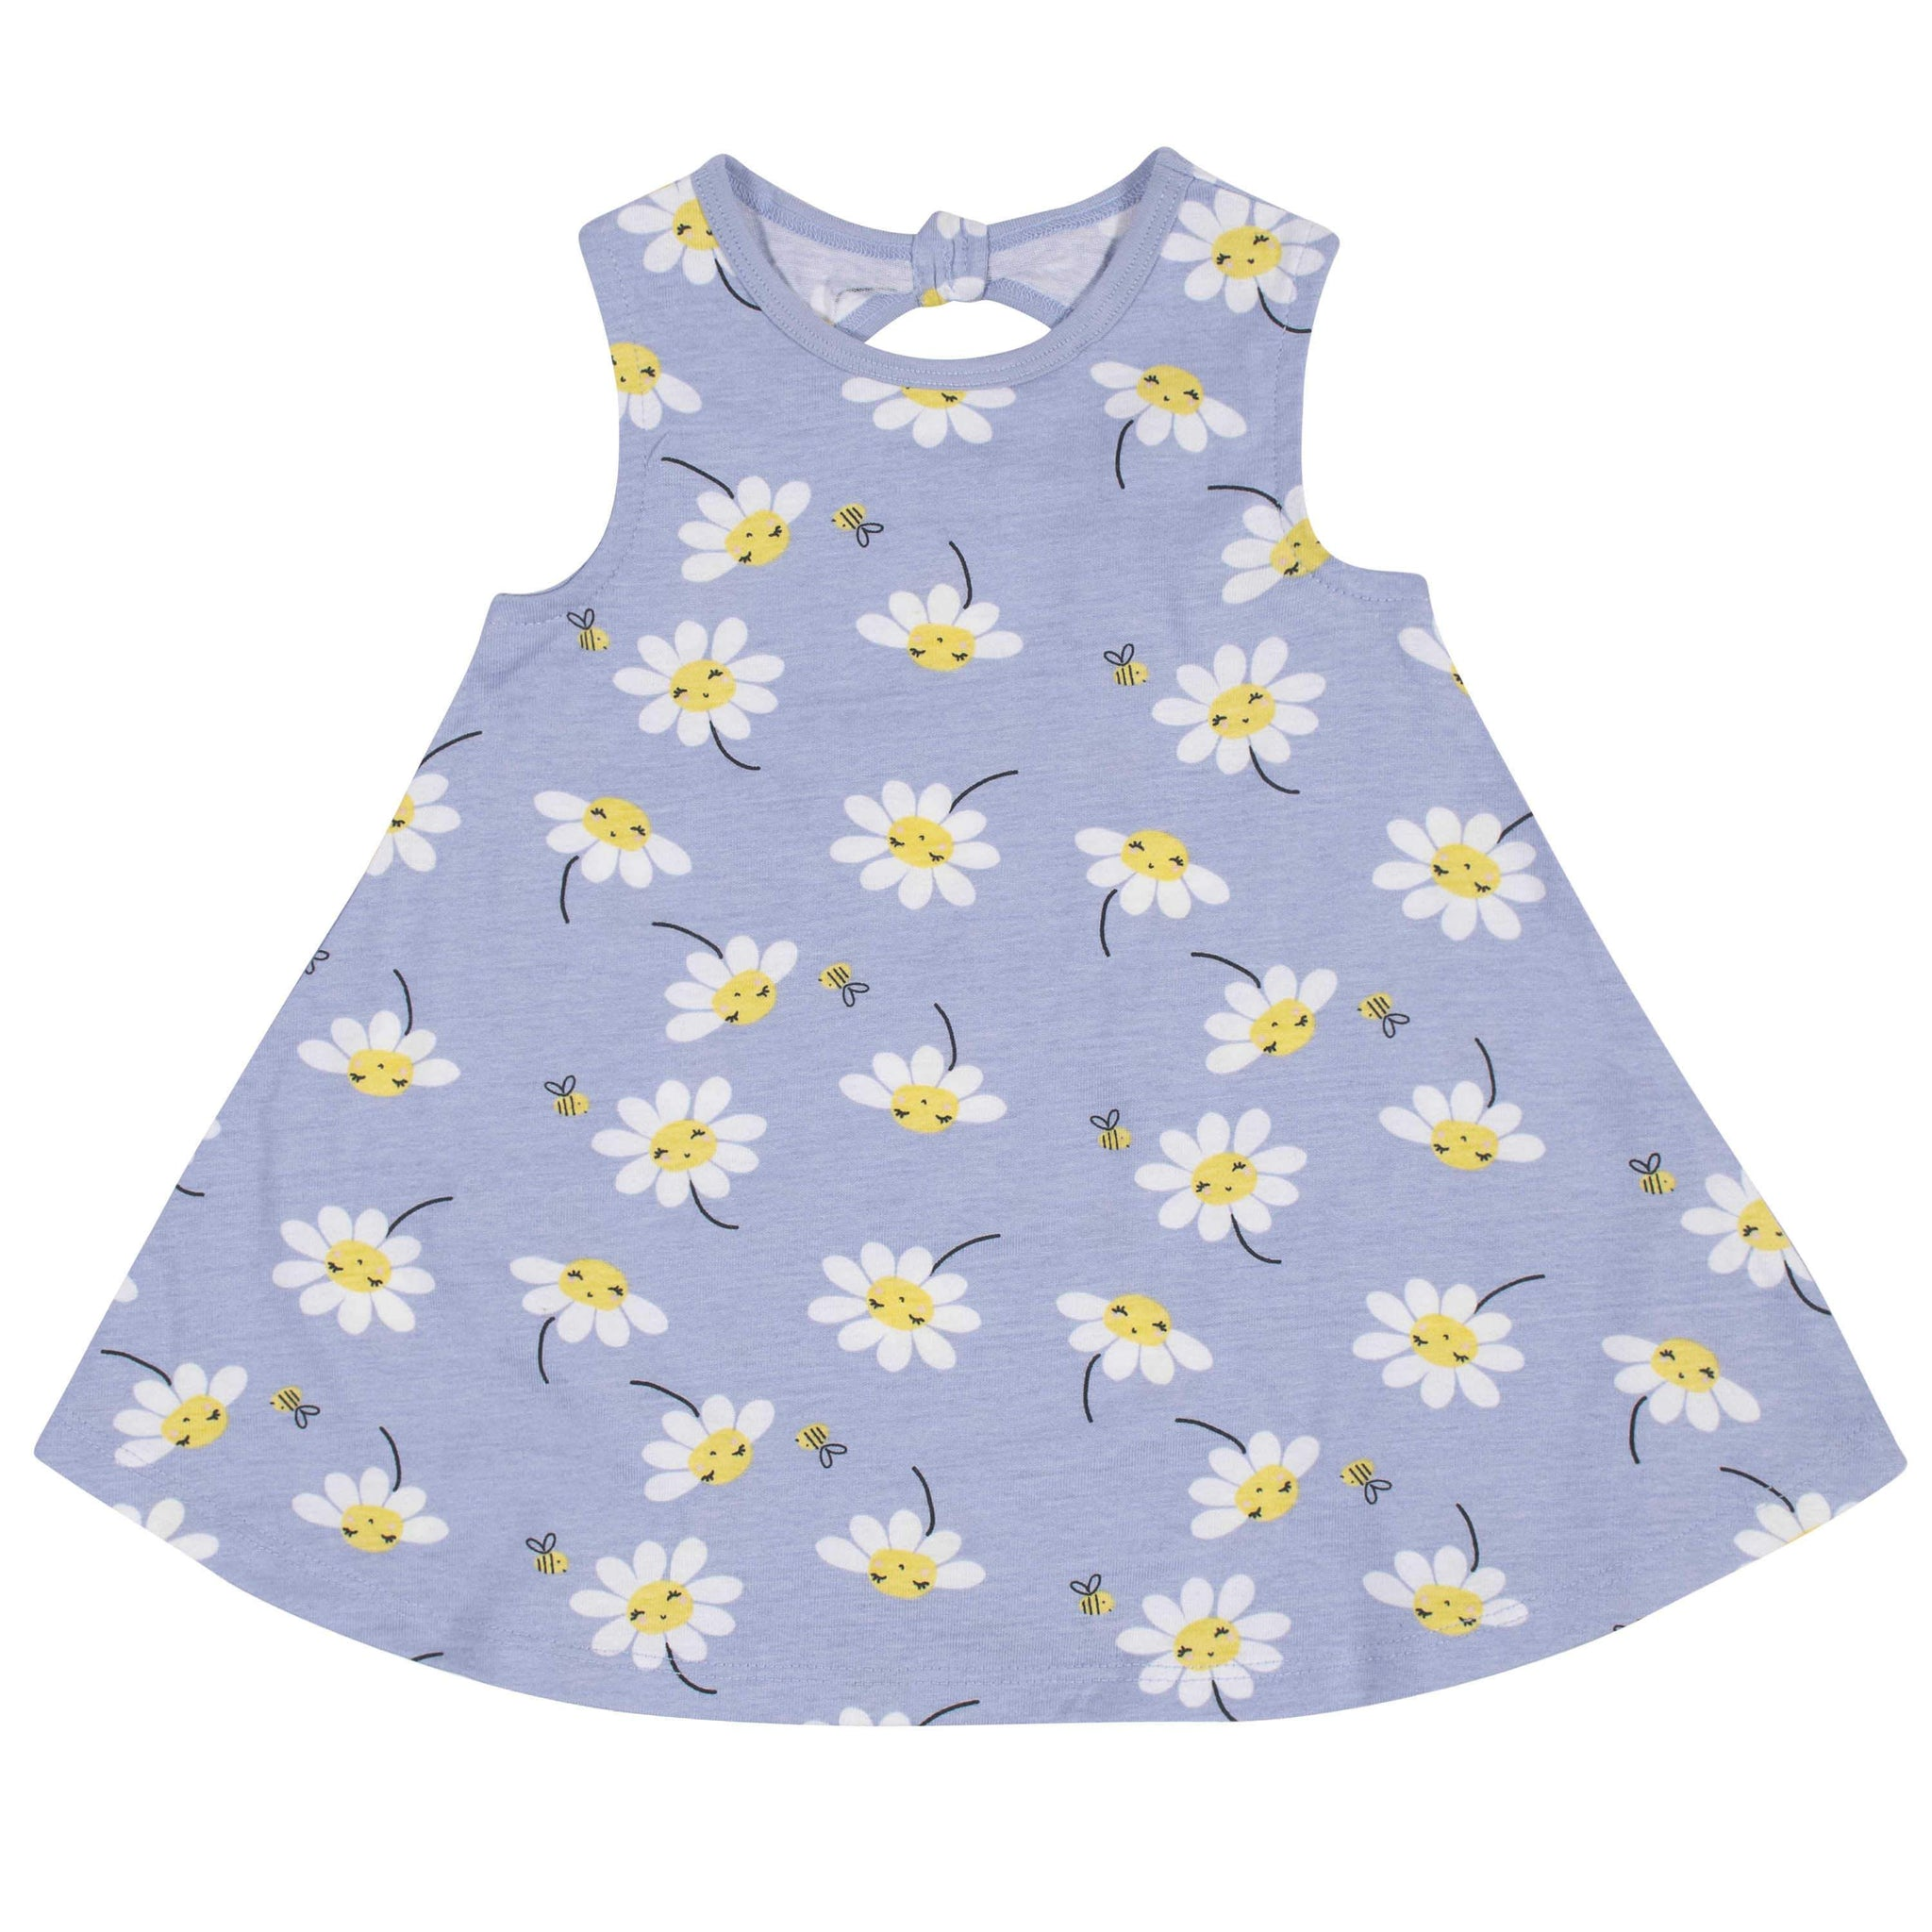 3-Piece Toddler Girls' Daisies Dress, Diaper Cover, and Hat Set